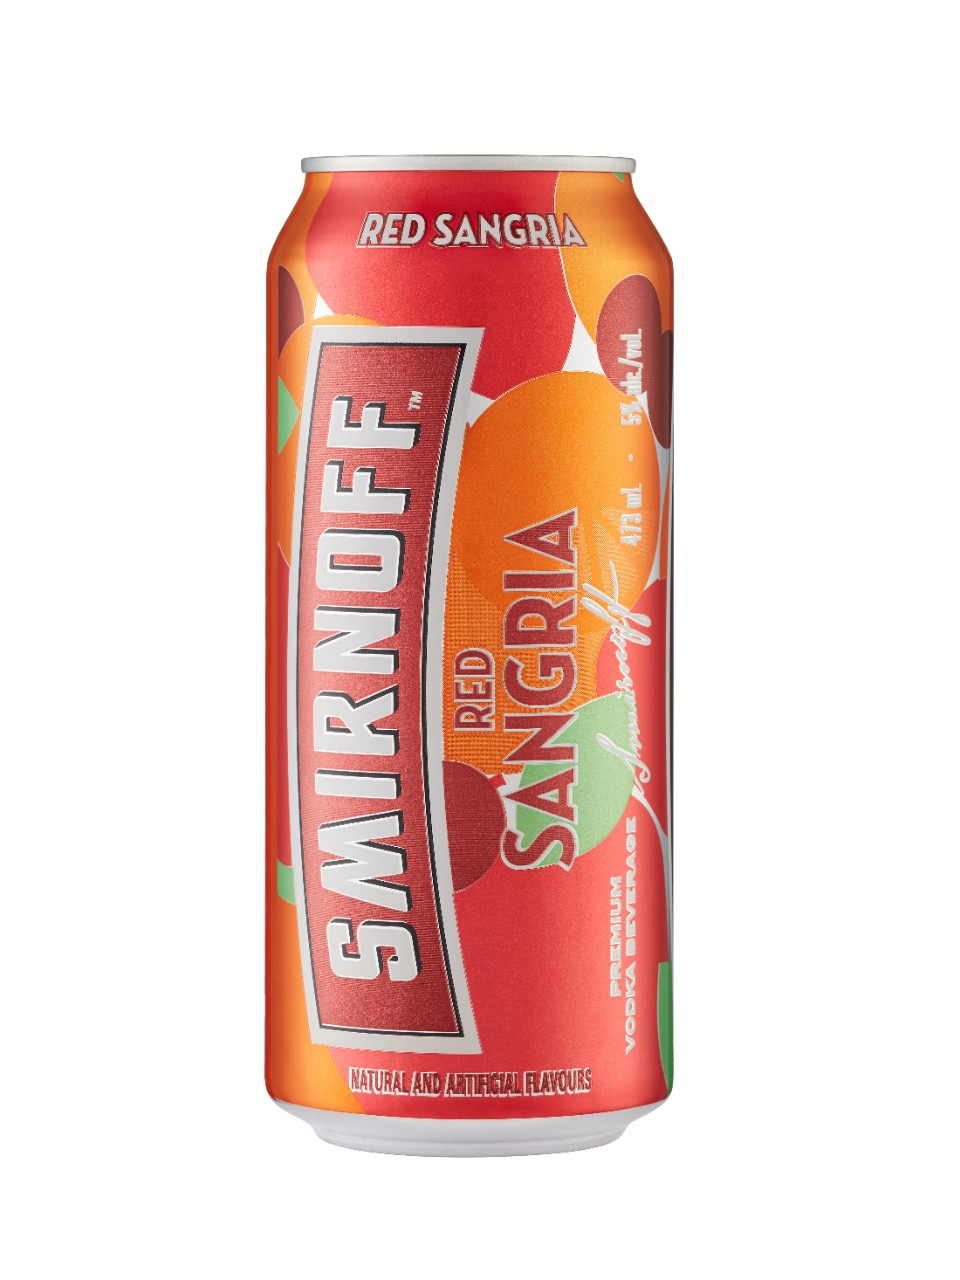 Smirnoff Red Sangria from LCBO